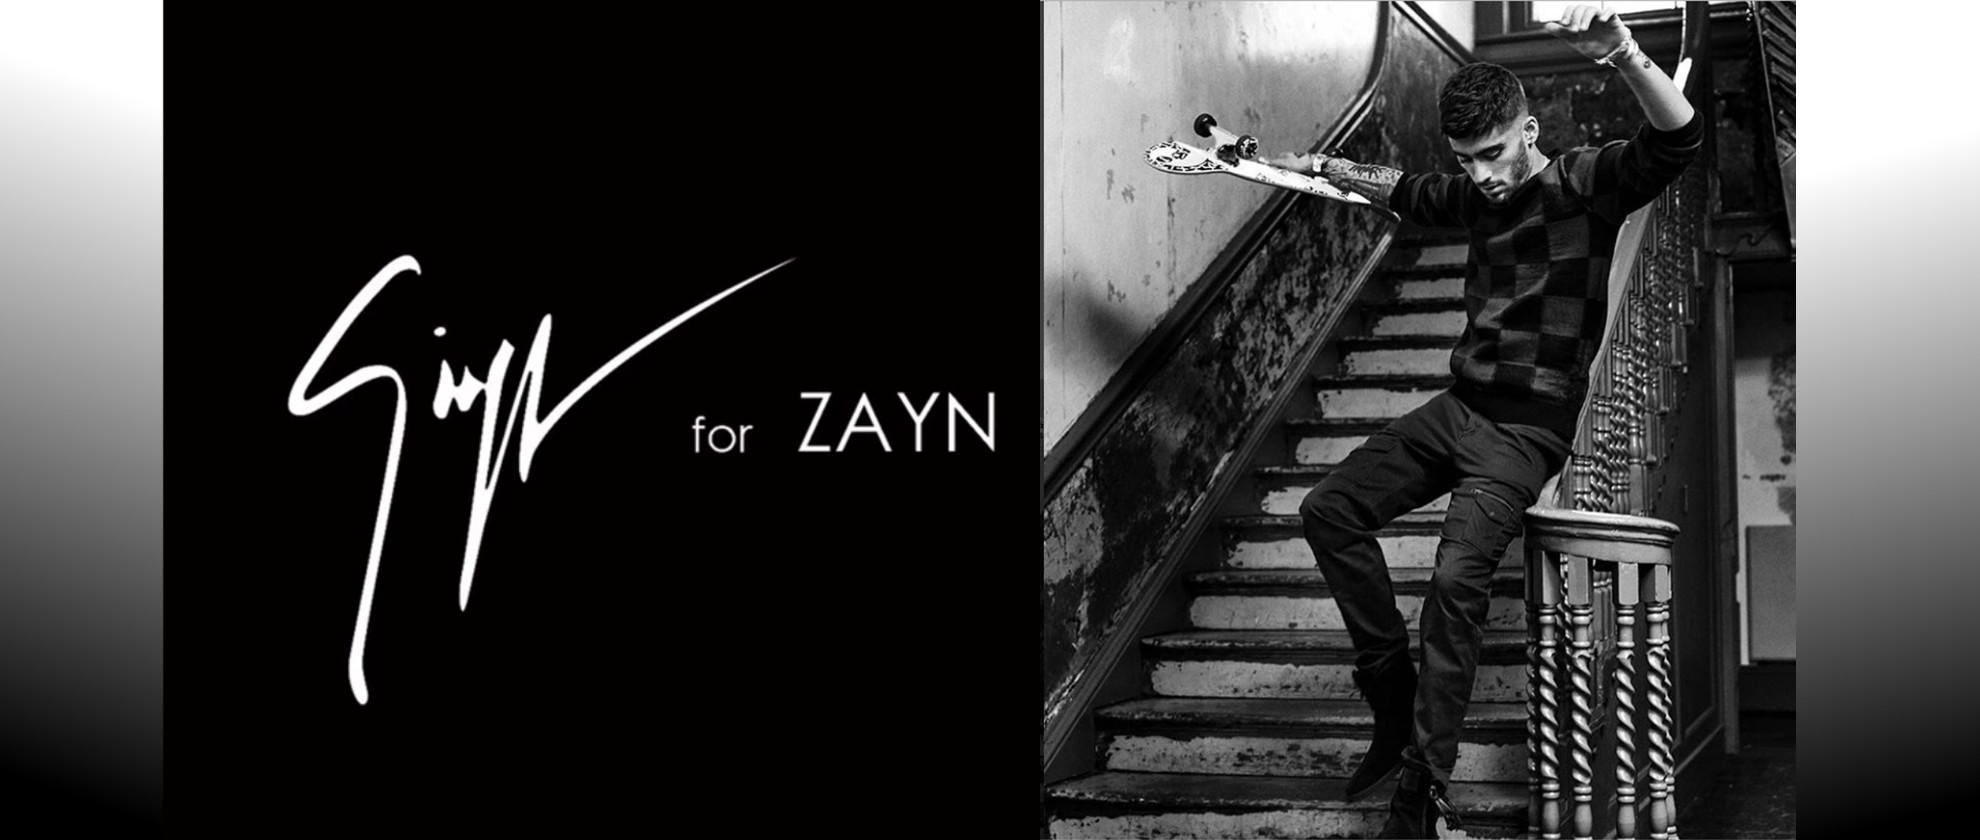 Zayn Malik's Career Takes a New Direction